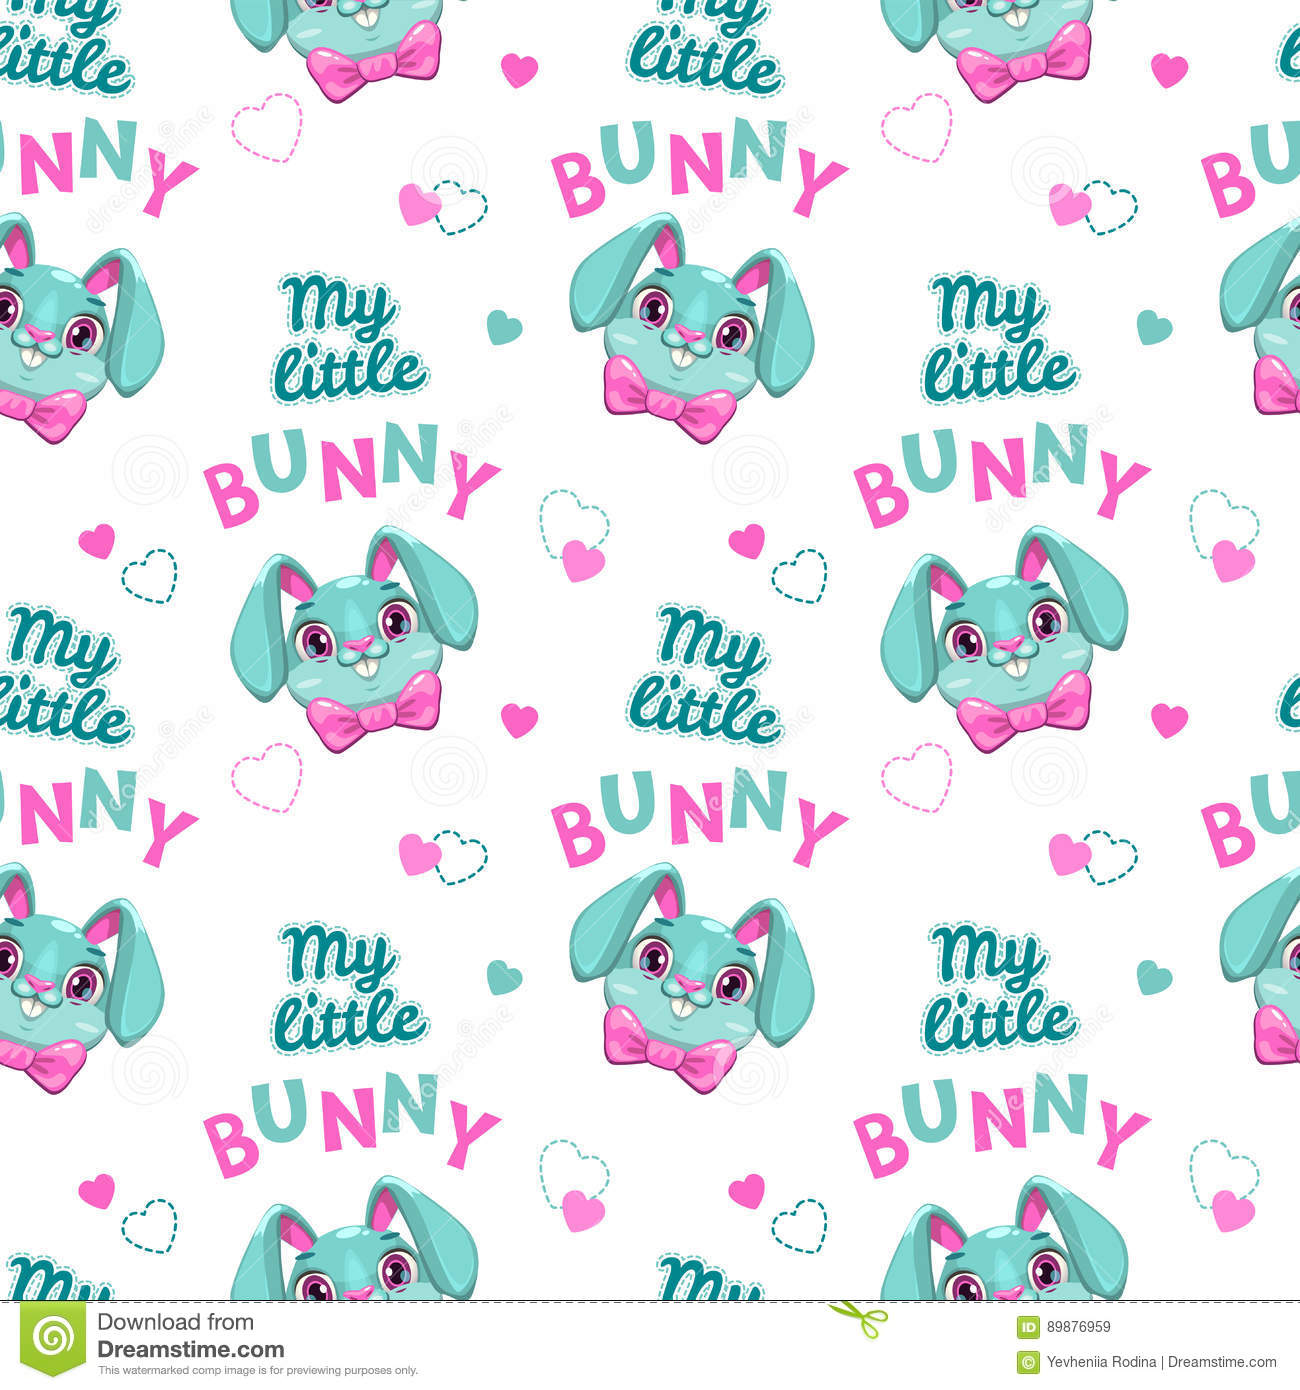 Cut Seamless Pattern With Bunny Faces And Slogans